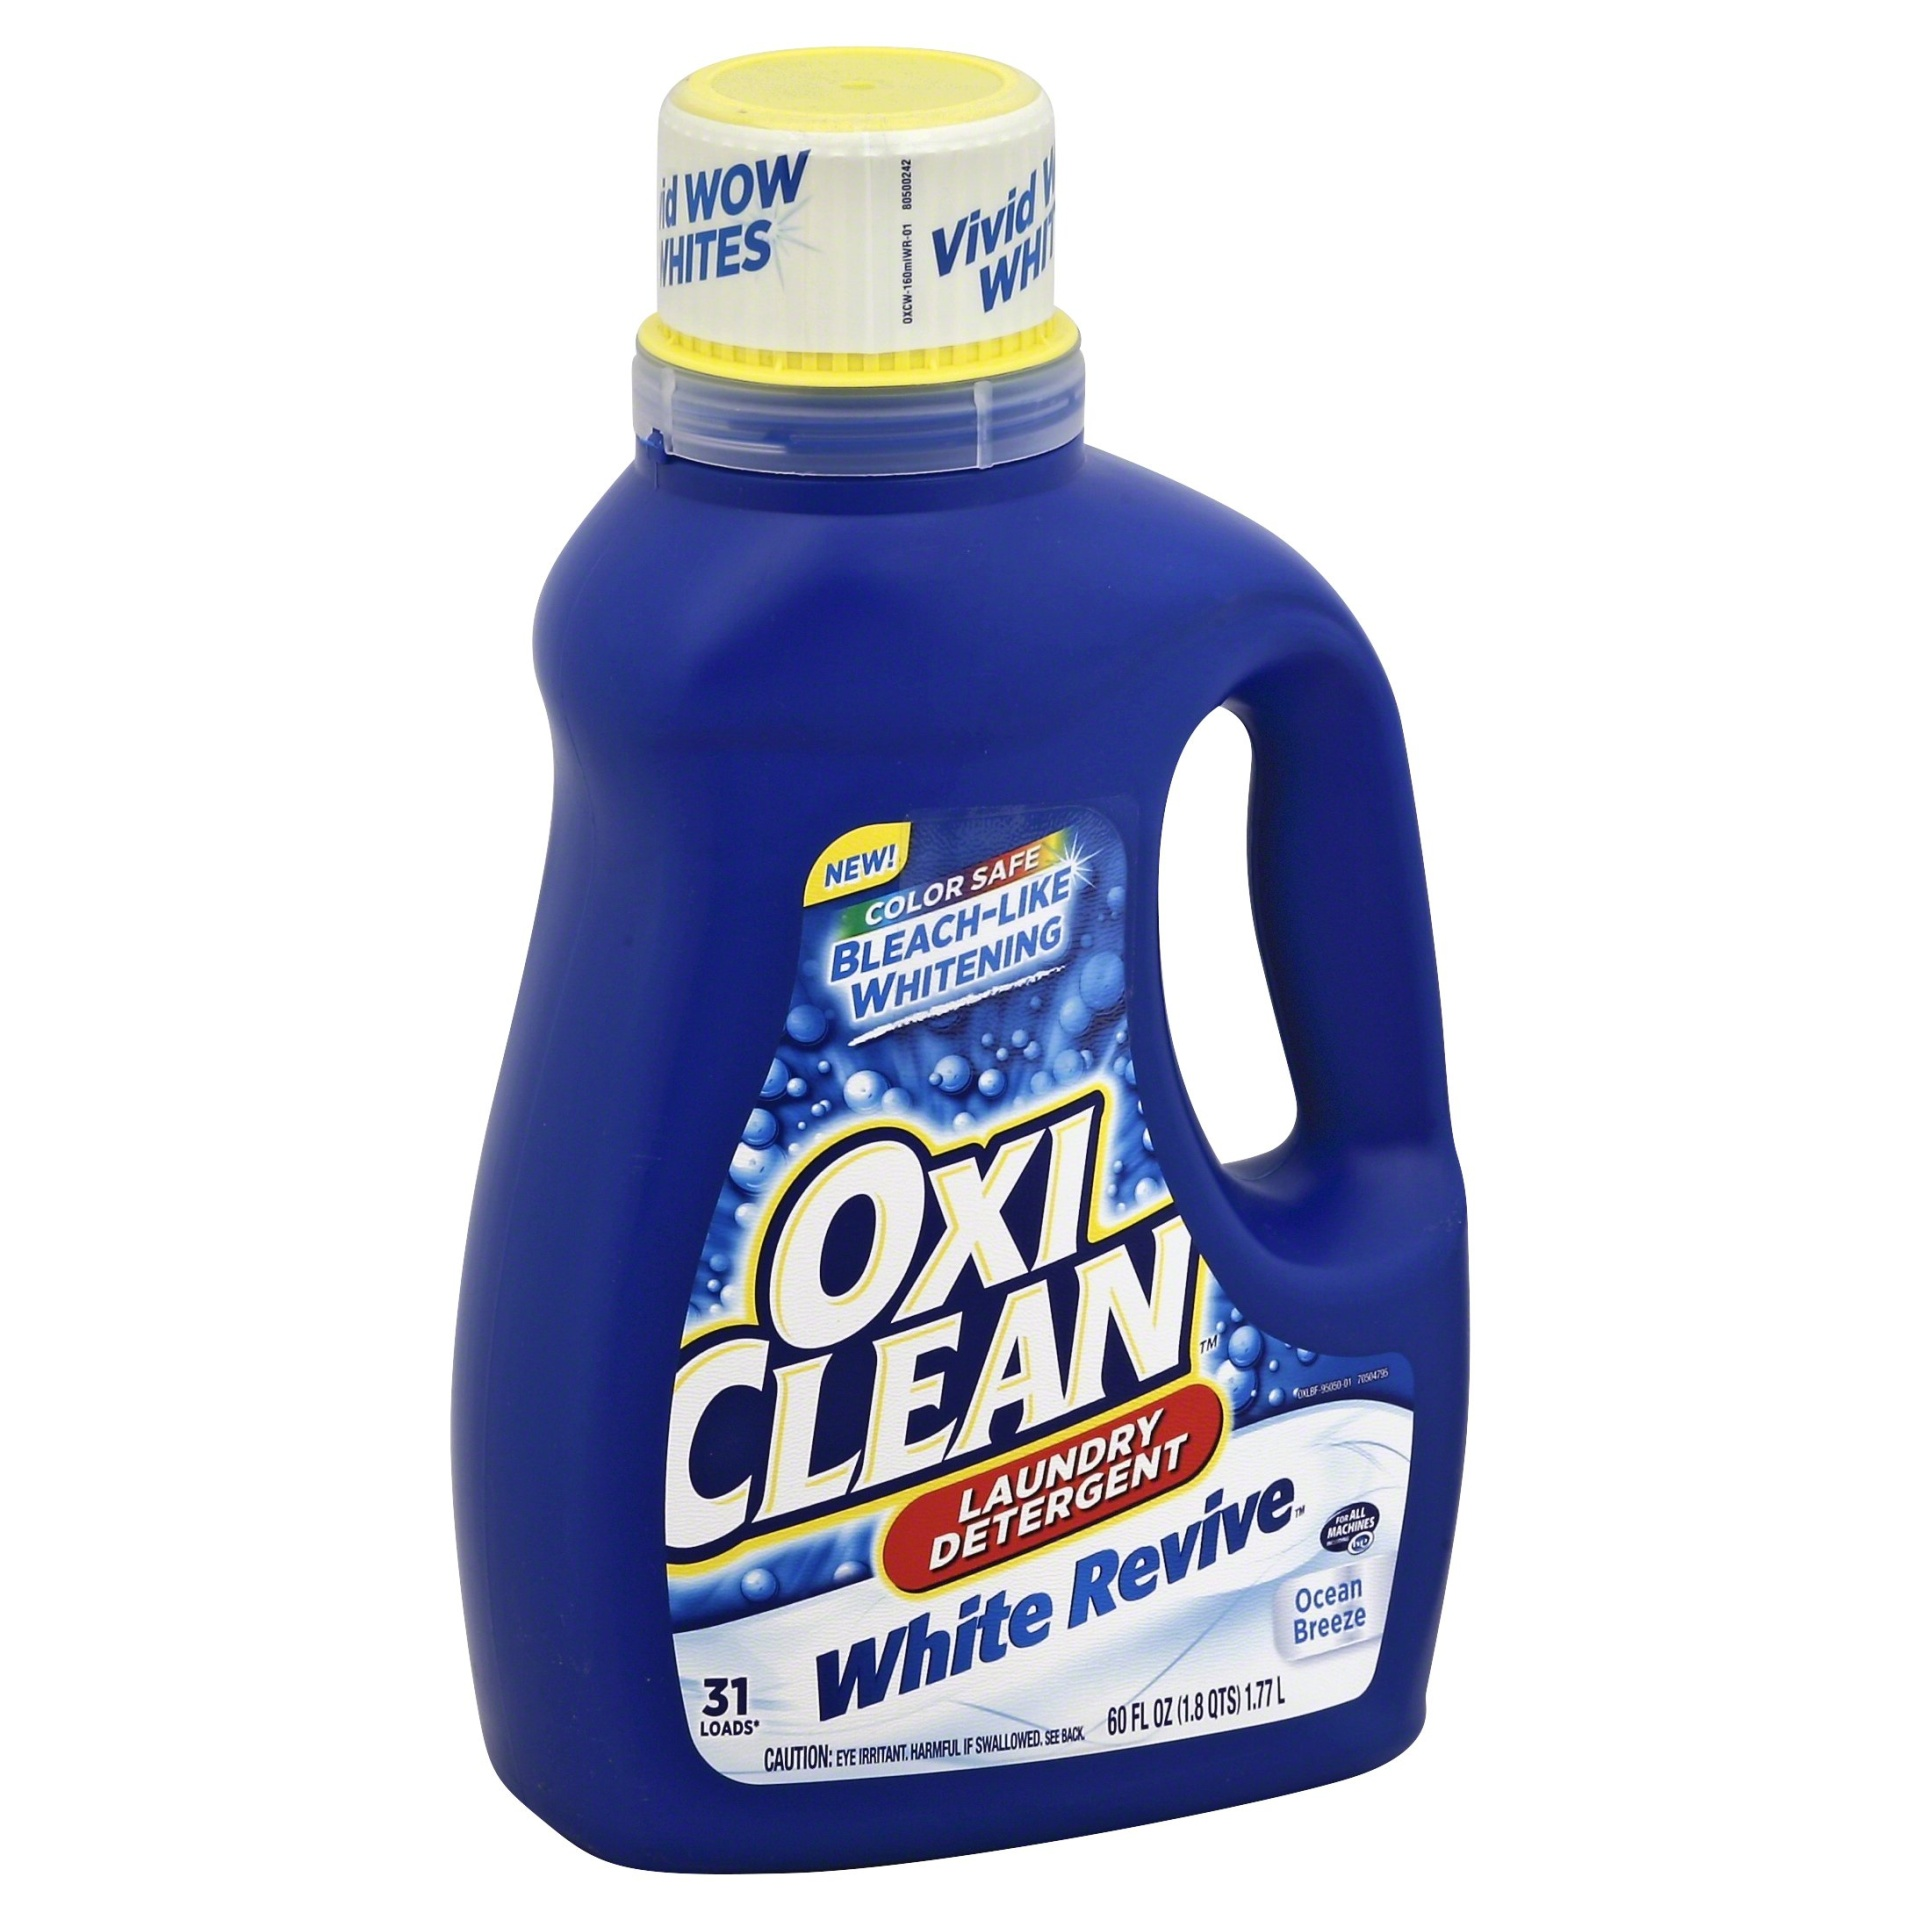 slide 1 of 3, Oxi-Clean Oxiclean White Revive Ocean Breeze Laundry Detergent,